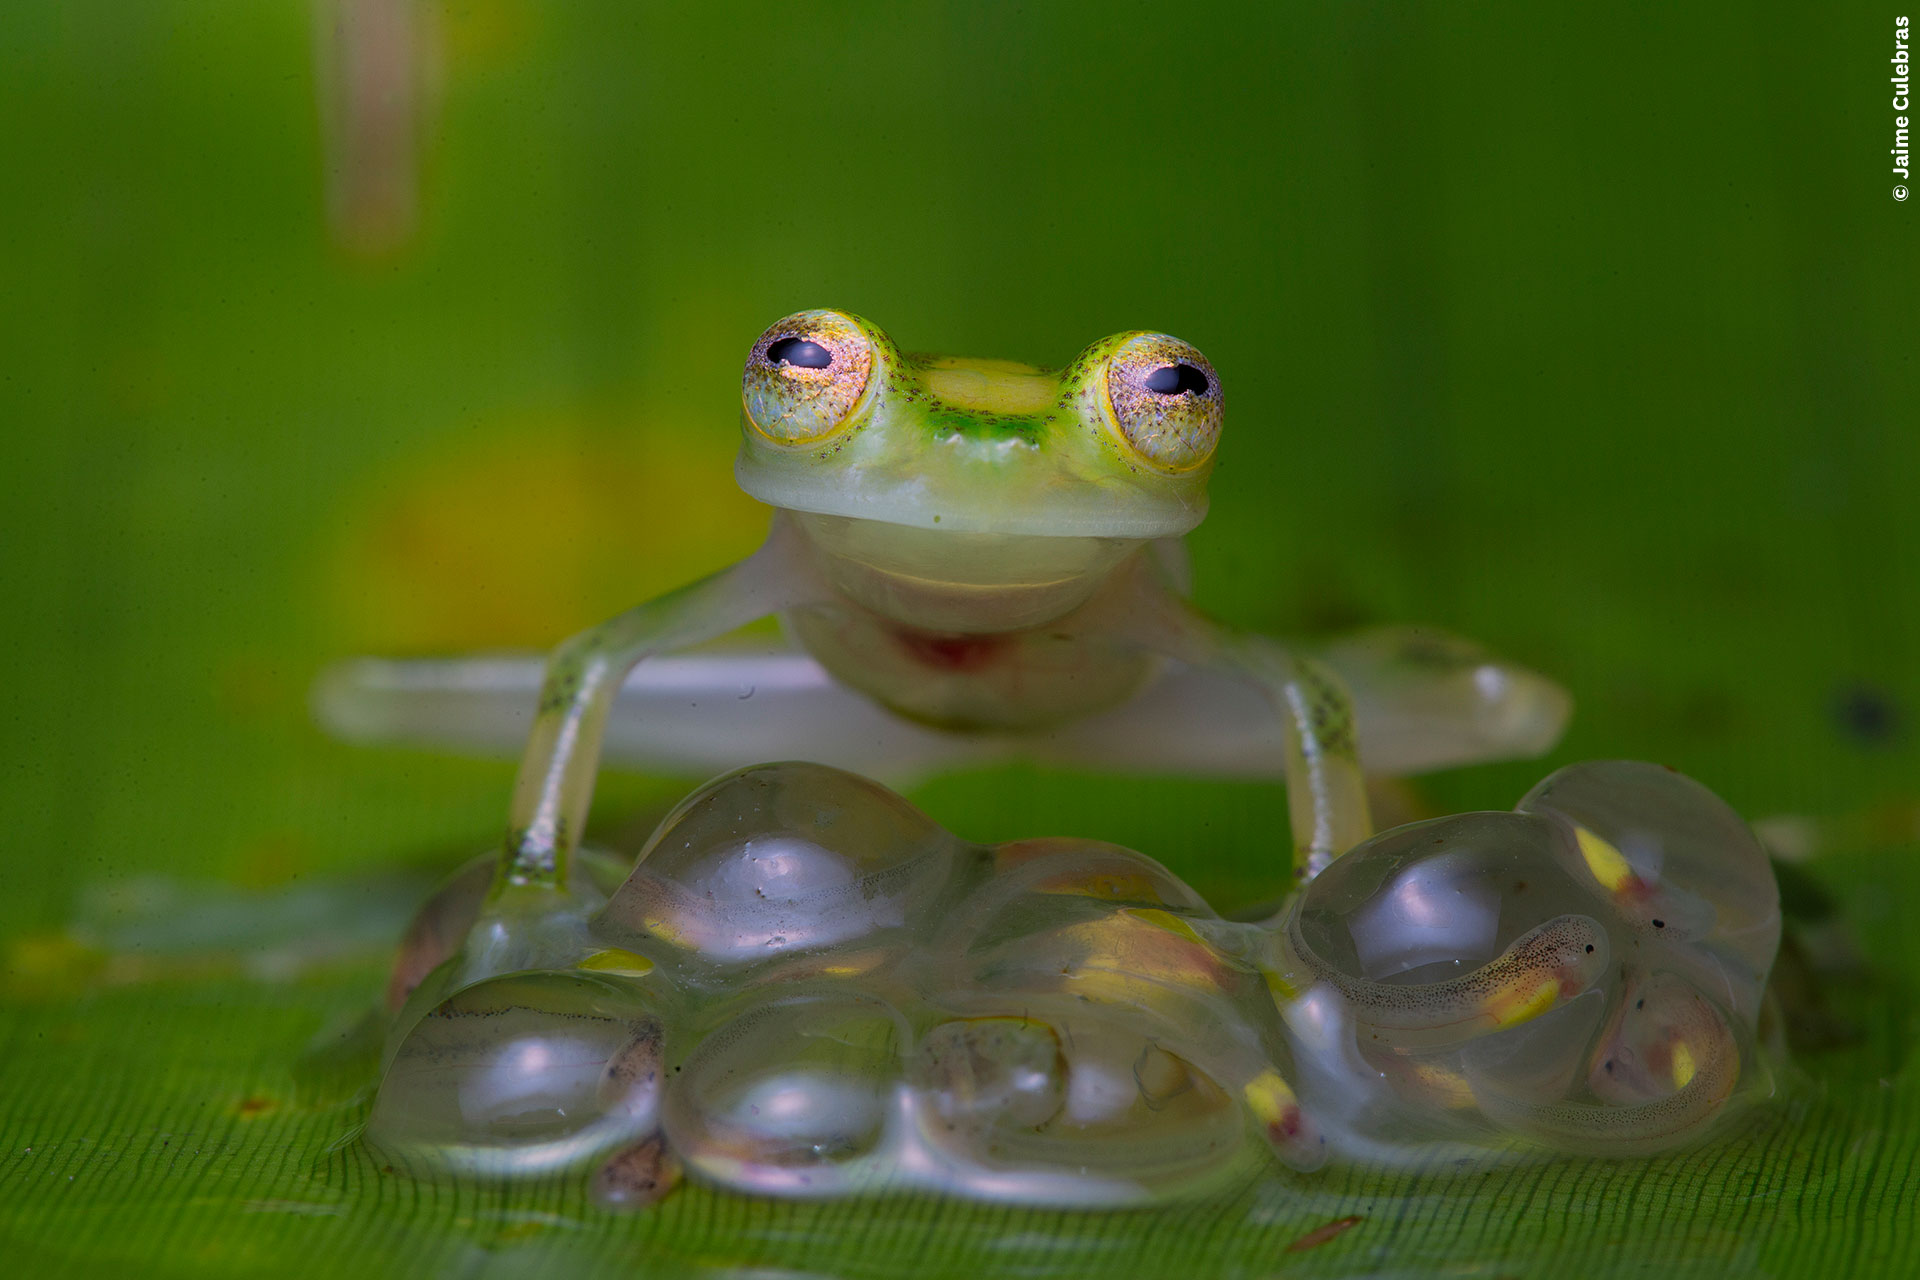 A green frog sits on its eggs against a green background